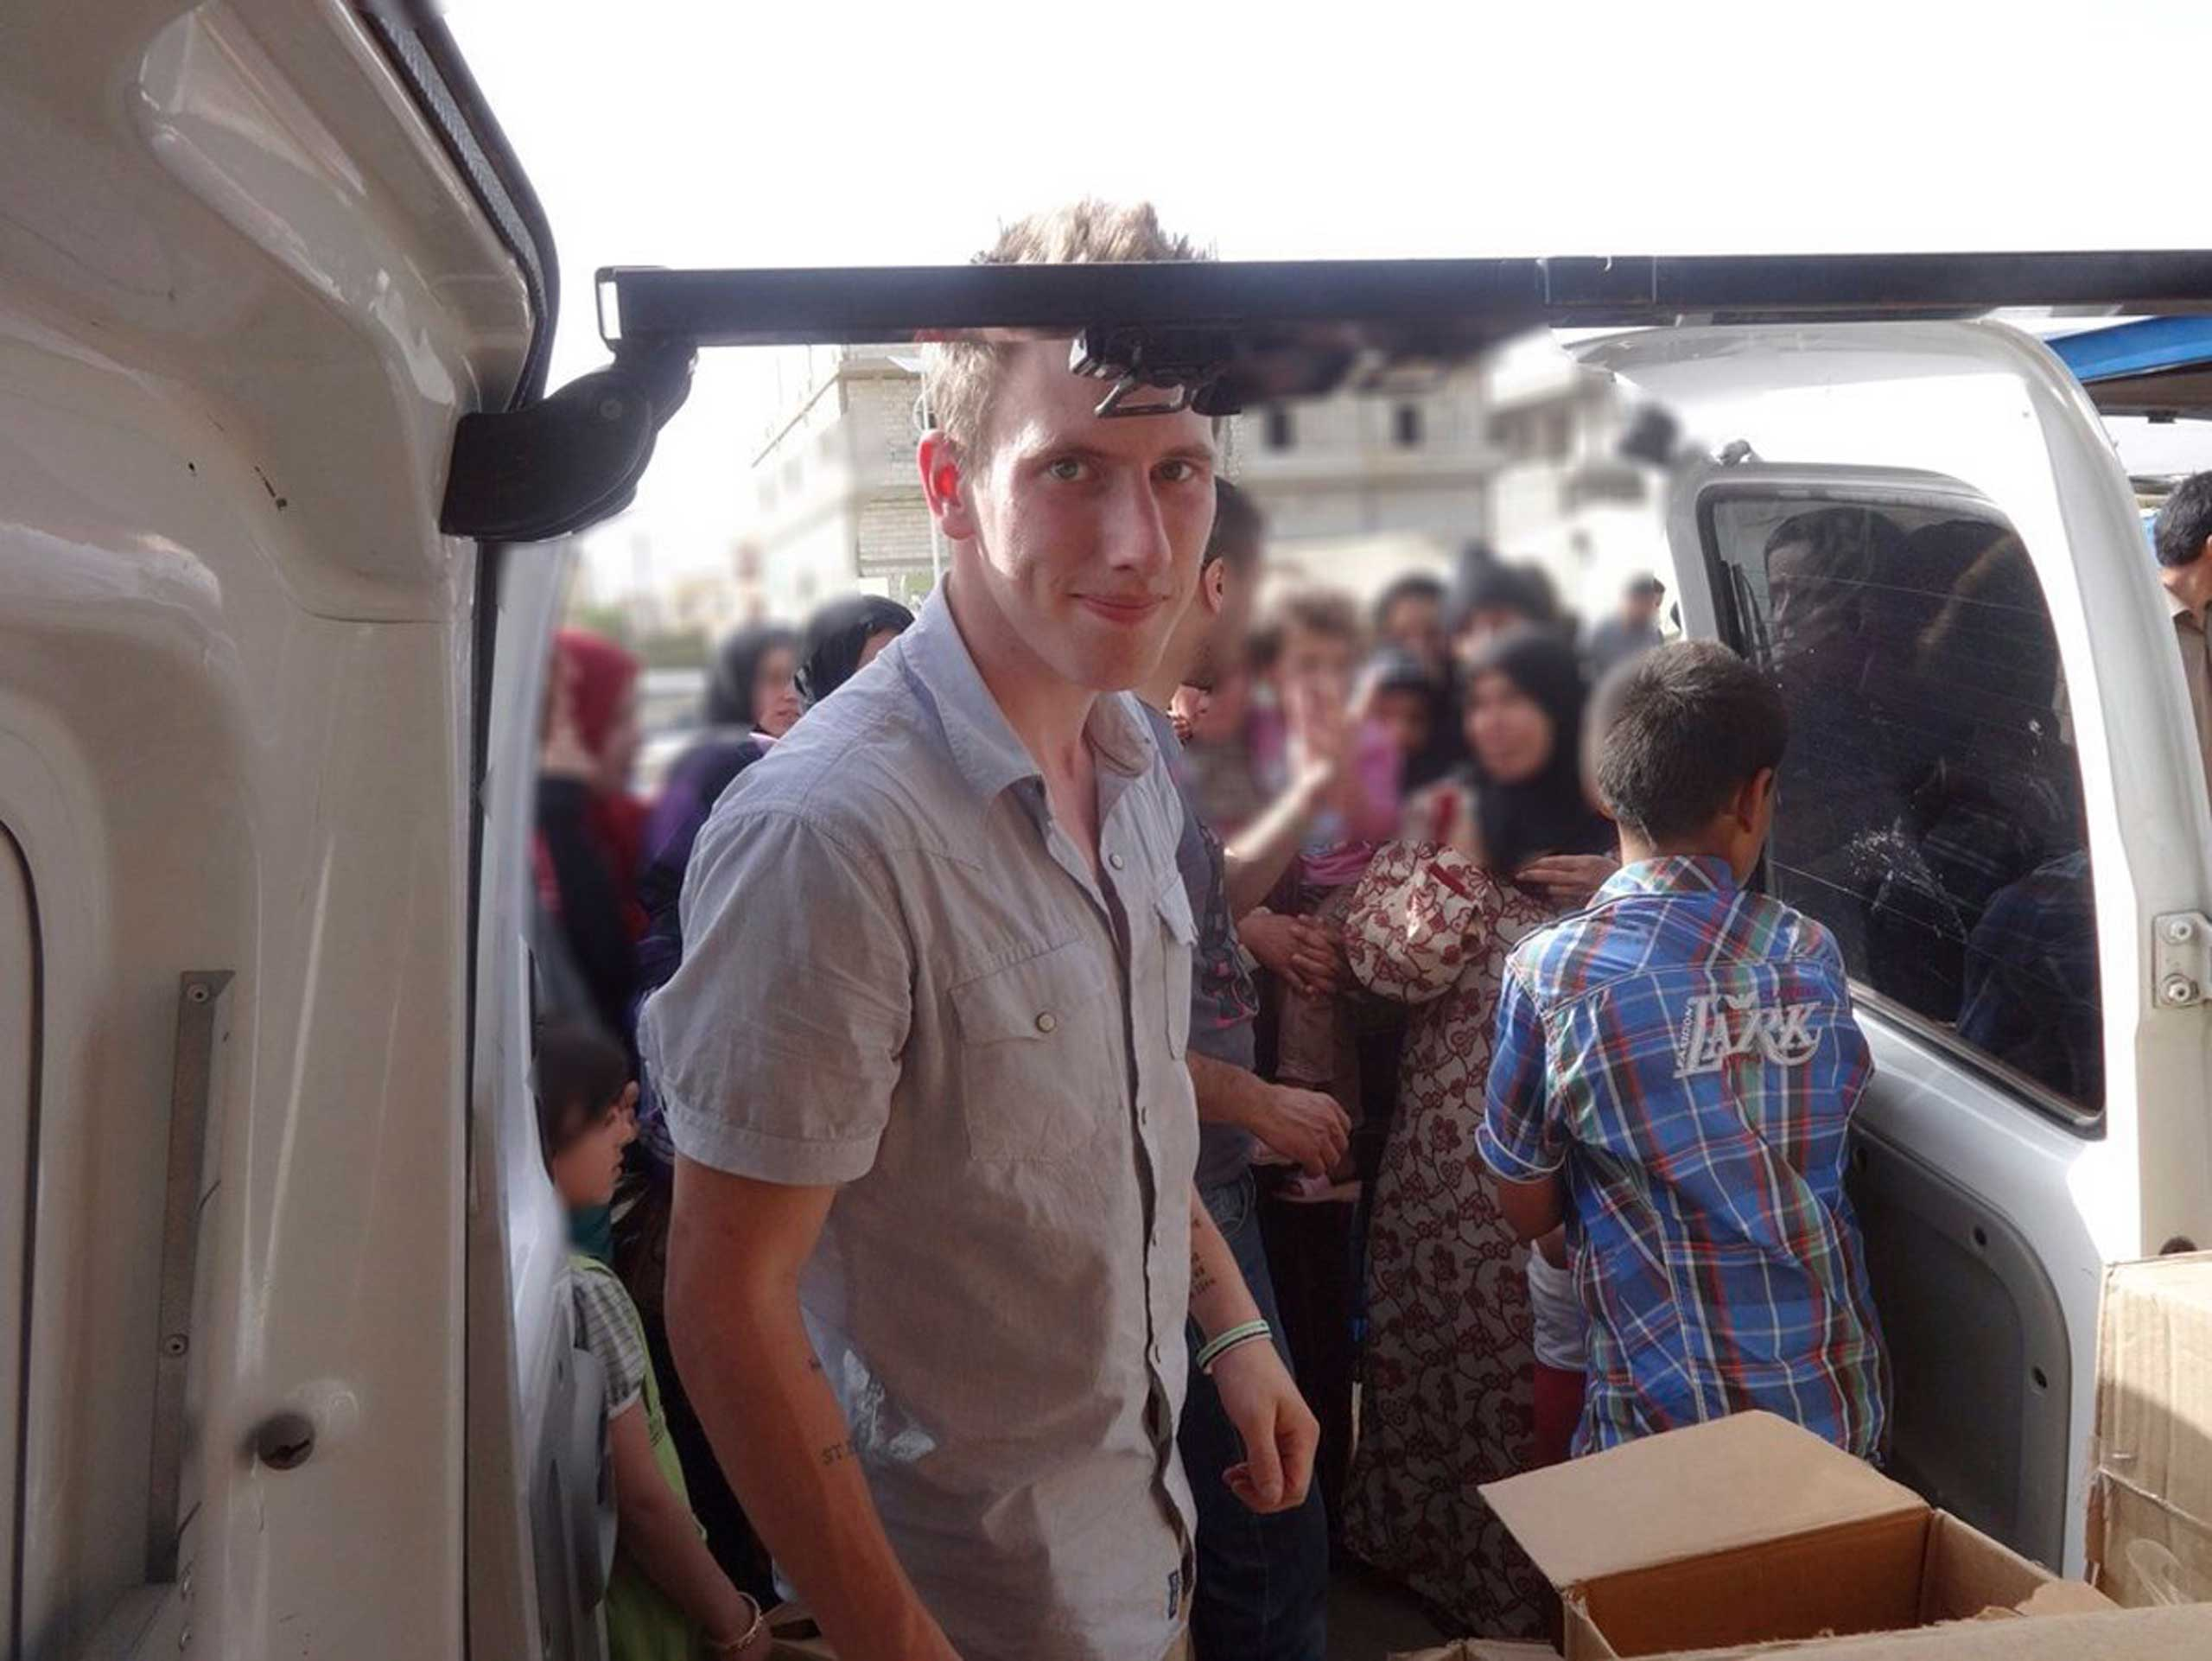 Abdul-Rahman (Peter) Kassig is pictured making a food delivery to refugees in Lebanonís Bekaa Valley in this May 2013 handout photo.